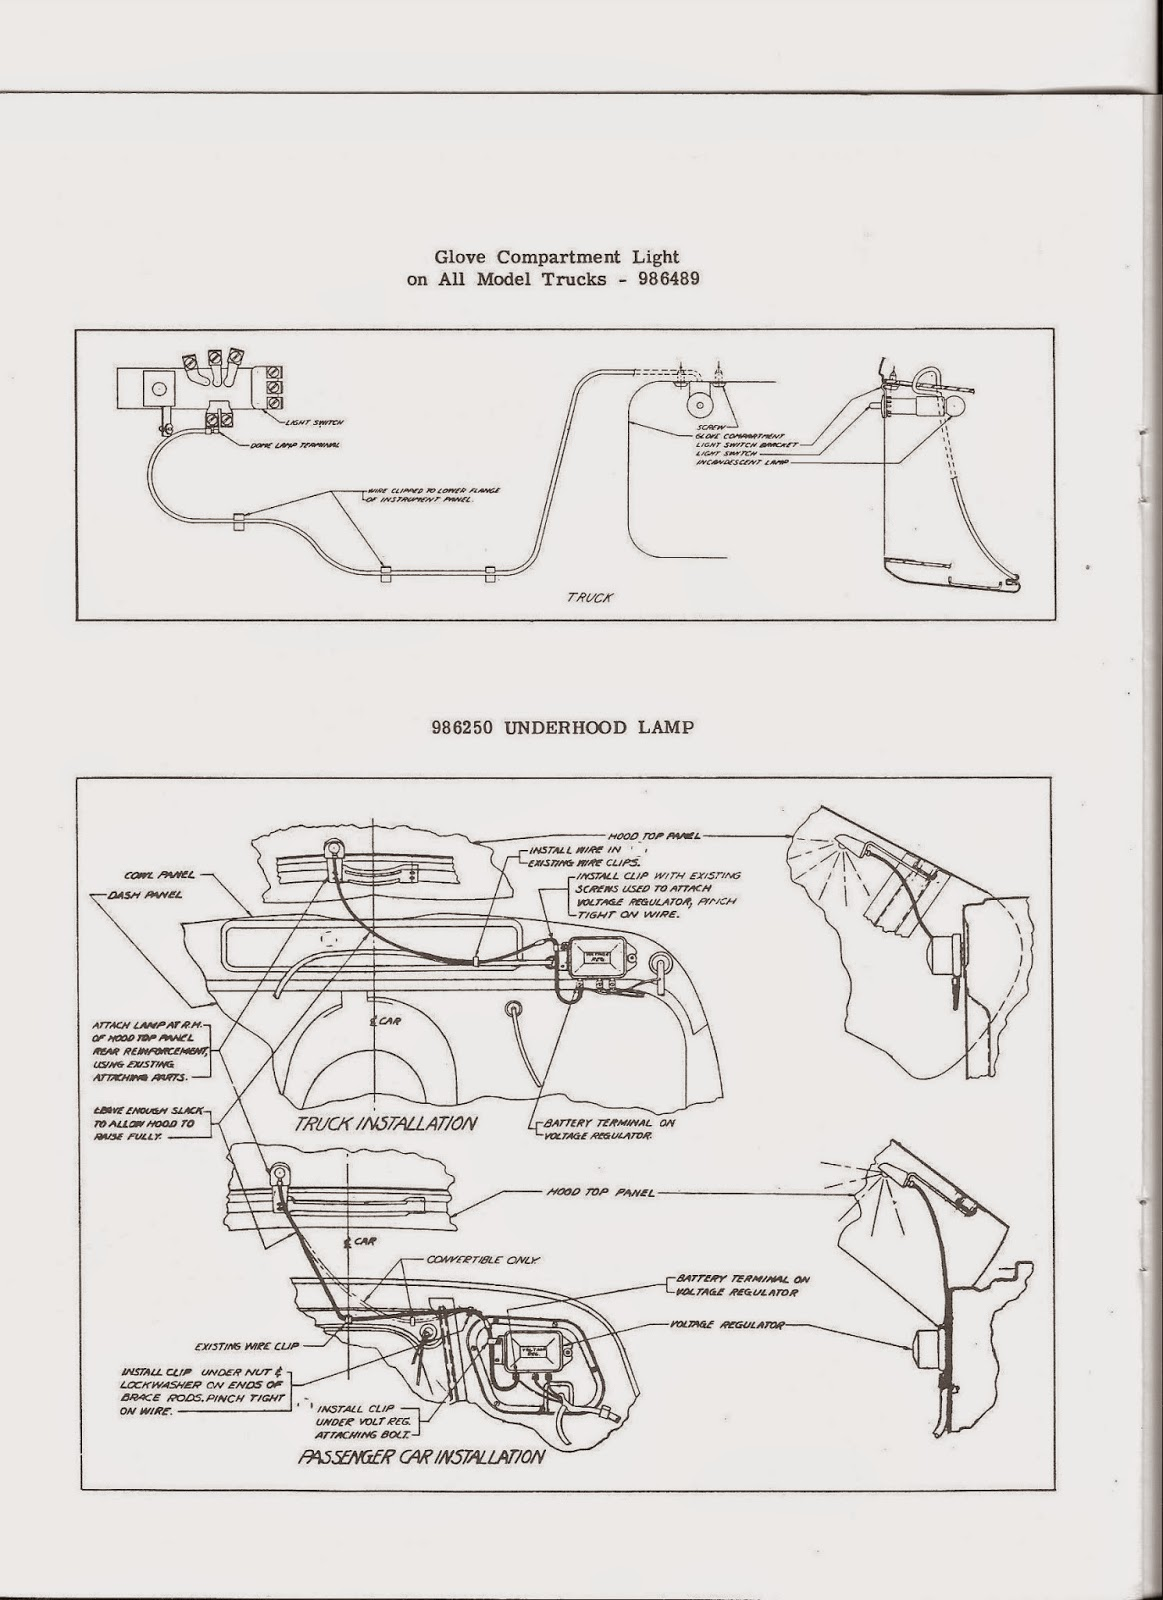 Additional Wiring Diagram For The 1953 Chevrolet Passenger Cars Convertible Gray Ghost Chevy 3100 Technical Information Page Glove Compartment Underhood Lamp